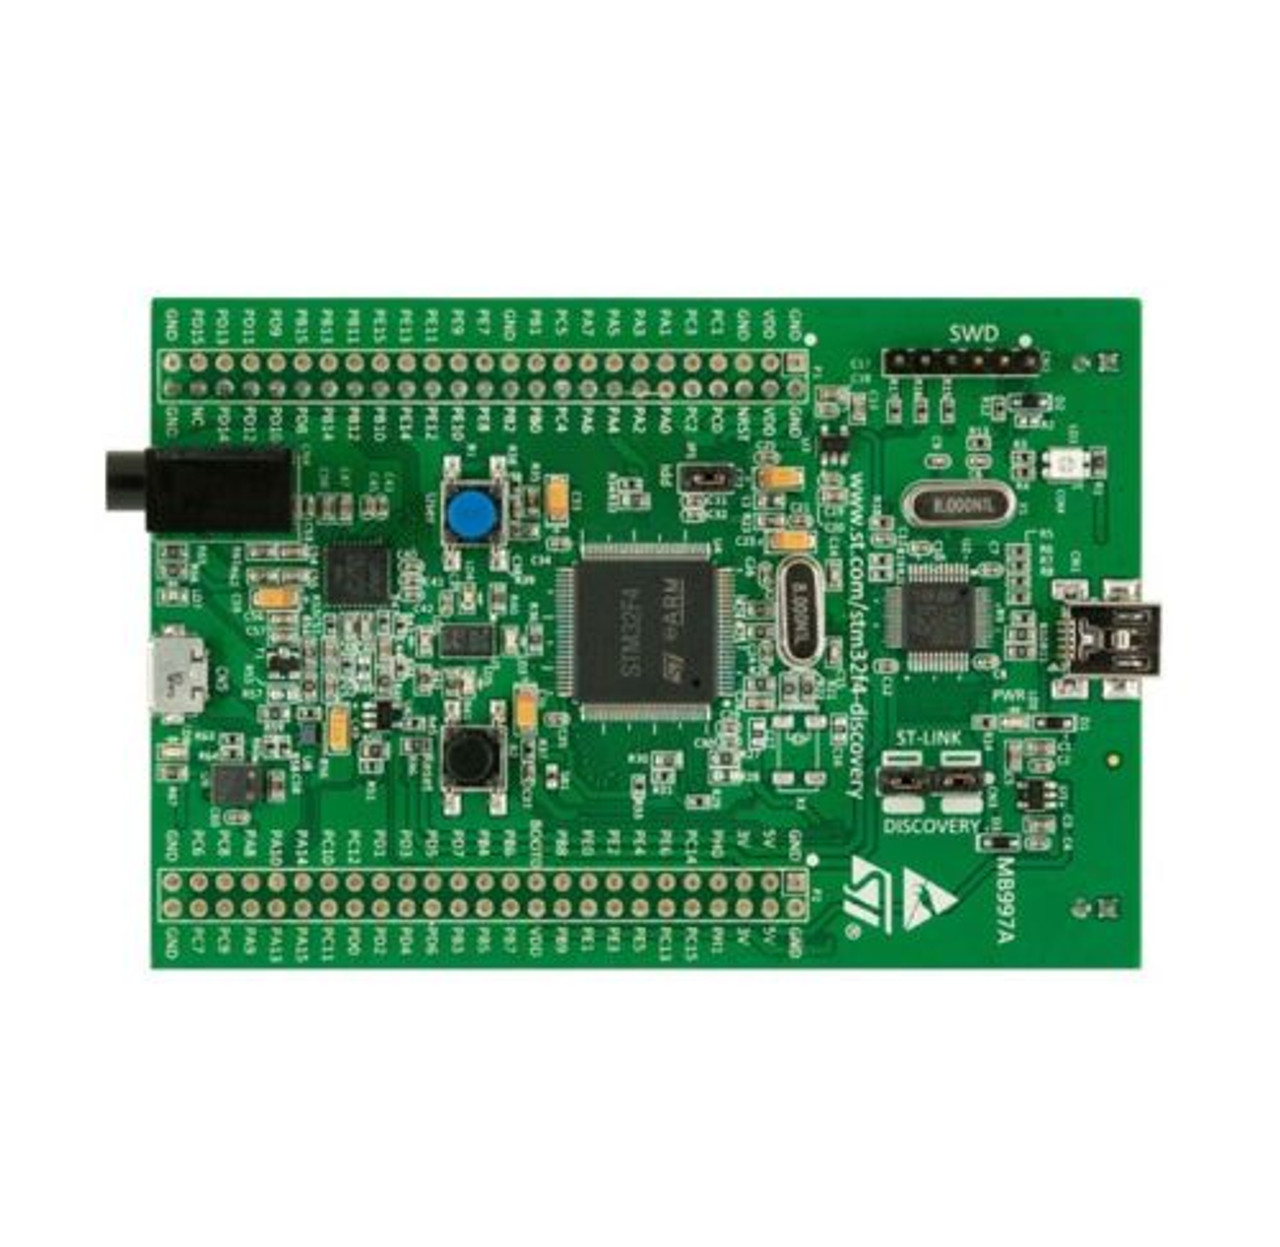 STM32F407G-DISC1 - STM32F4 Discovery Kit